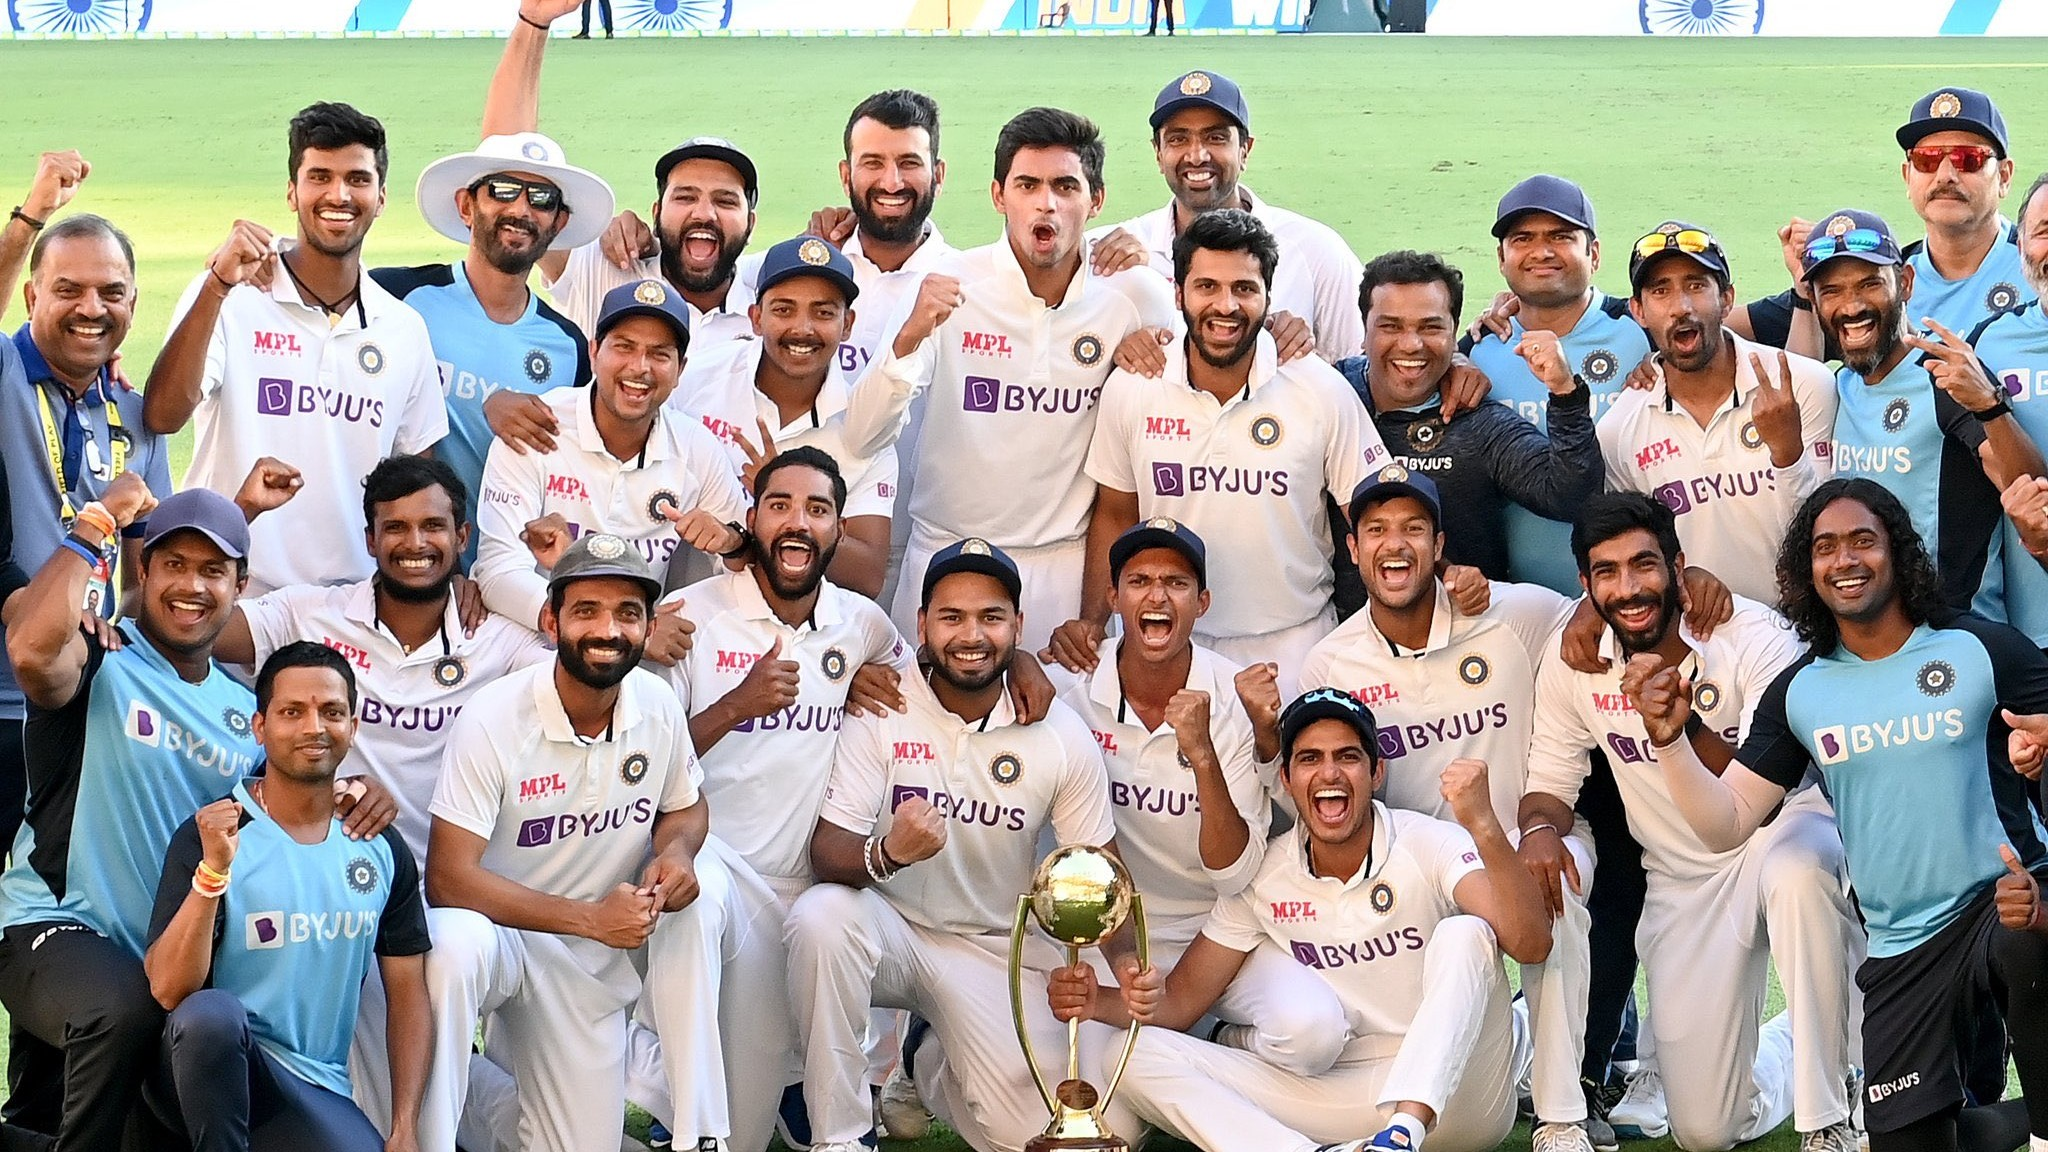 AUS v IND 2020-21: Elated Team India members share their joy and happiness after winning Test series